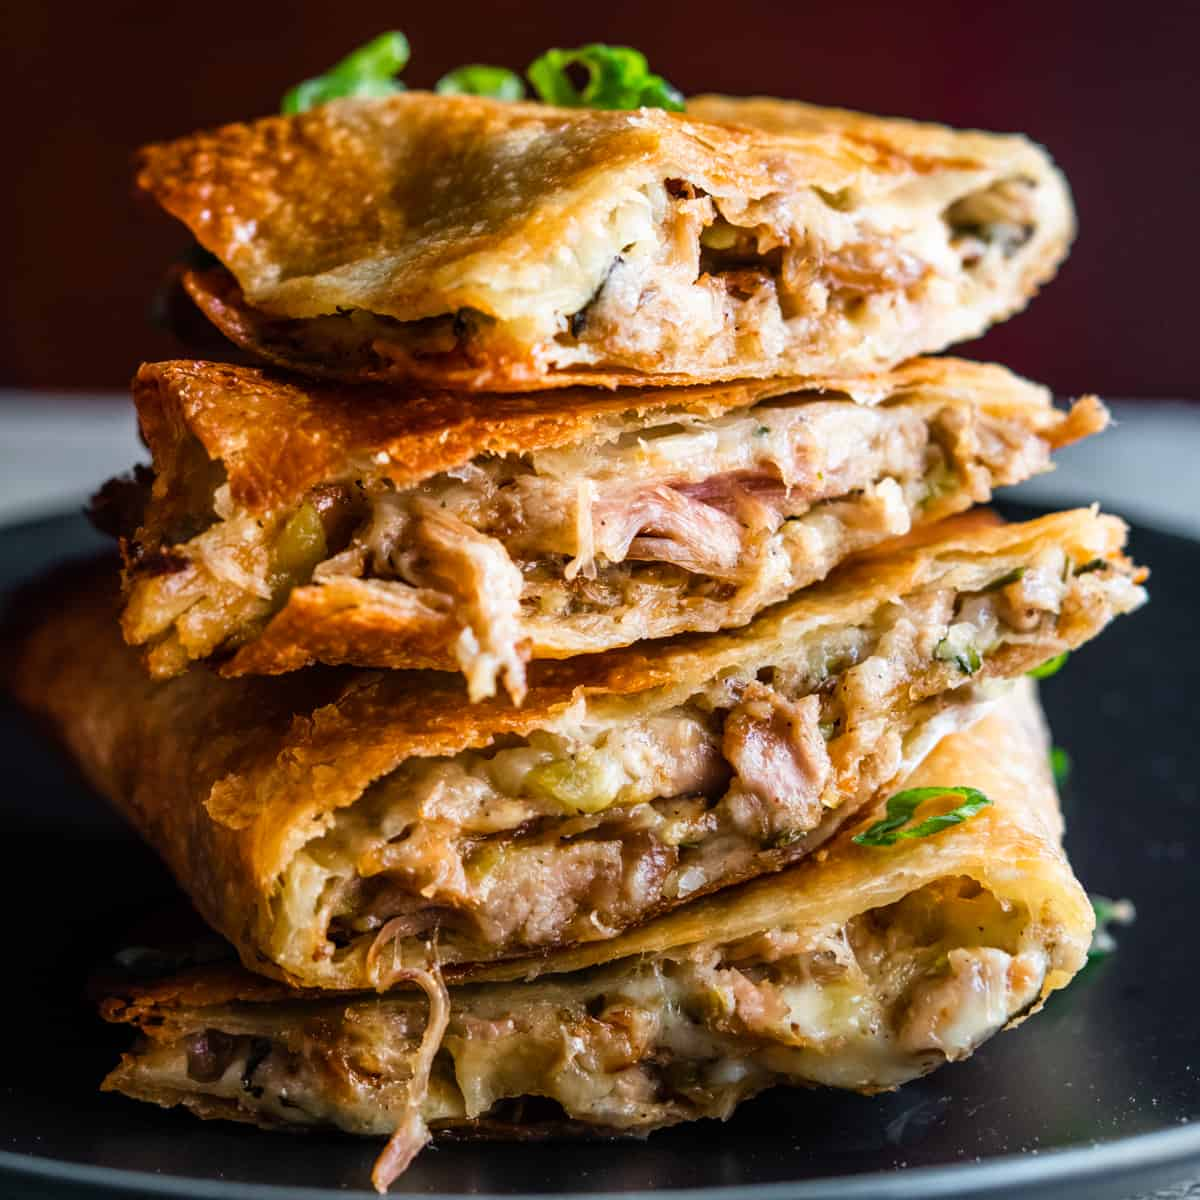 Pulled Pork Quesadillas stacked on a black plate